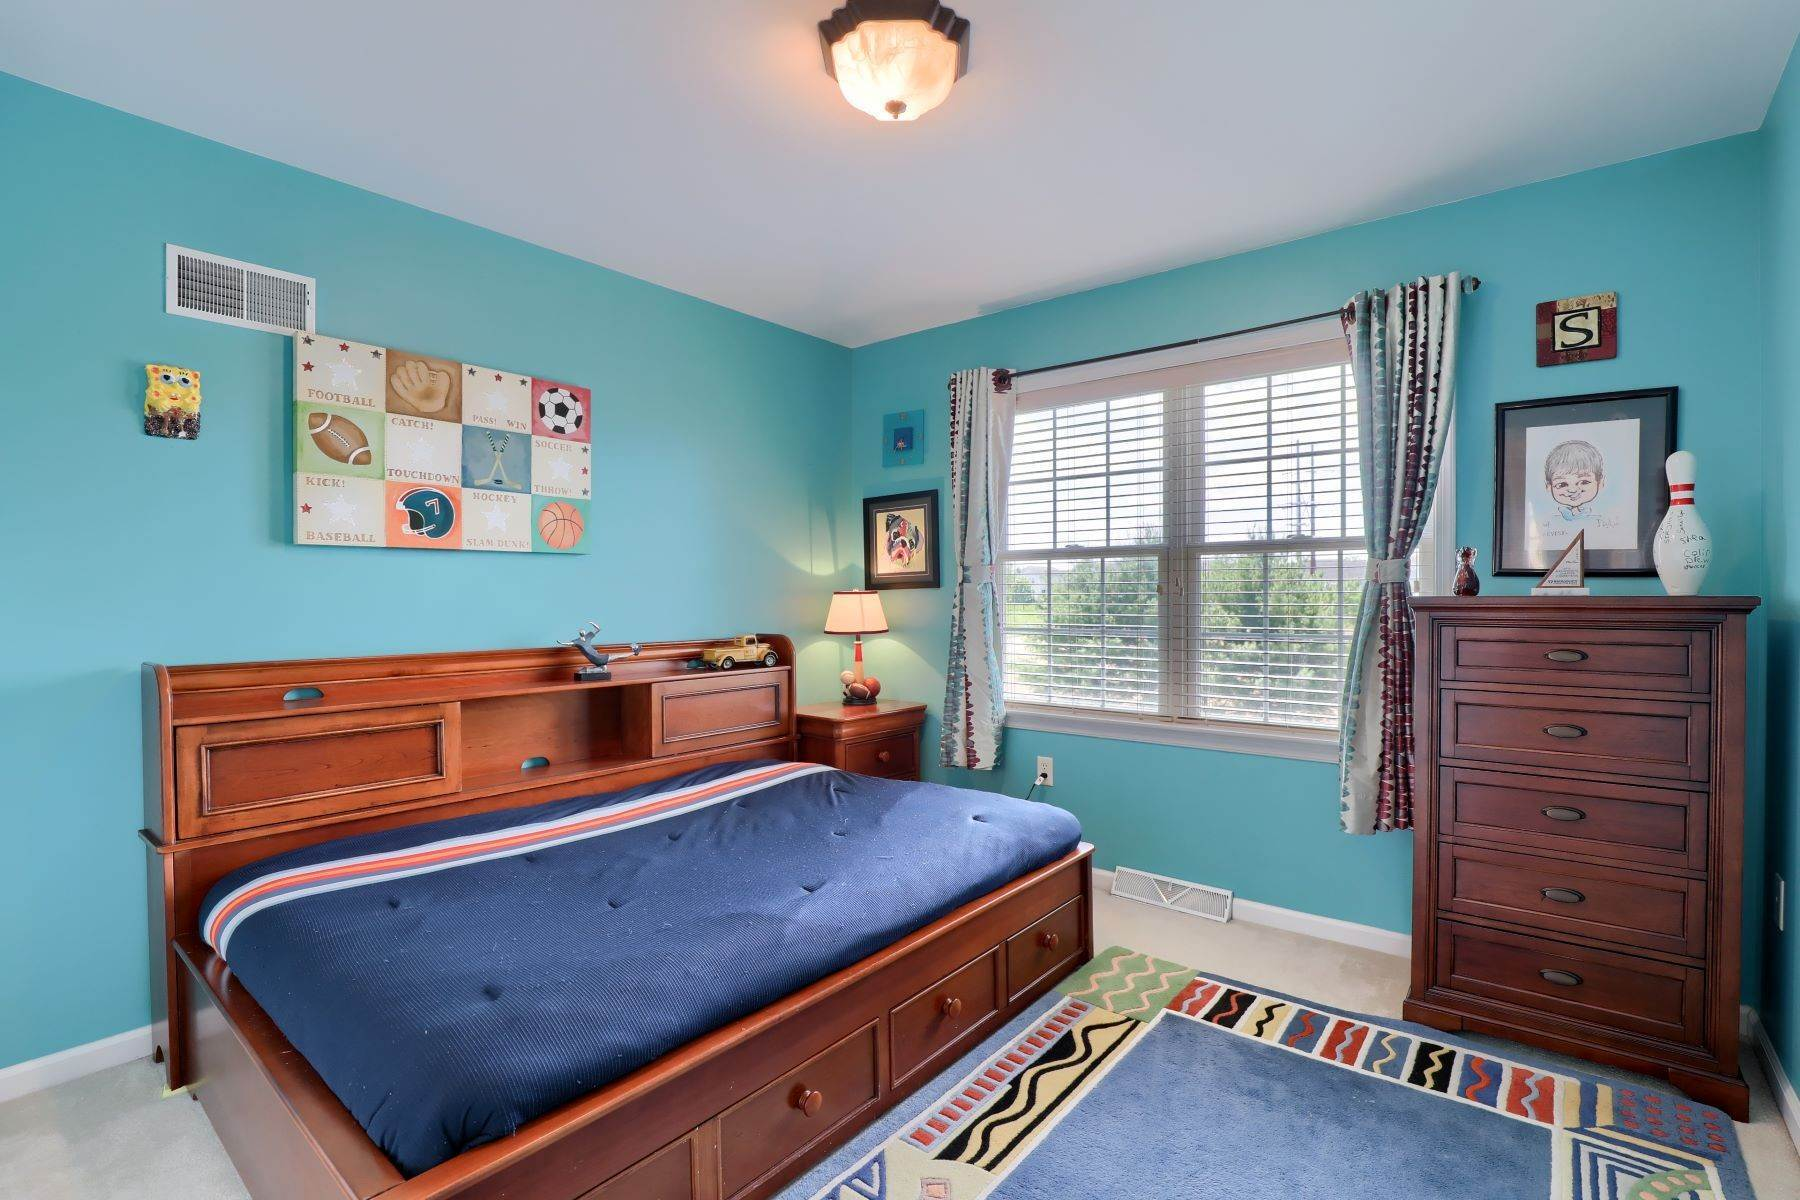 25. Single Family Homes for Sale at 18 Jared Place Lititz, Pennsylvania 17543 United States